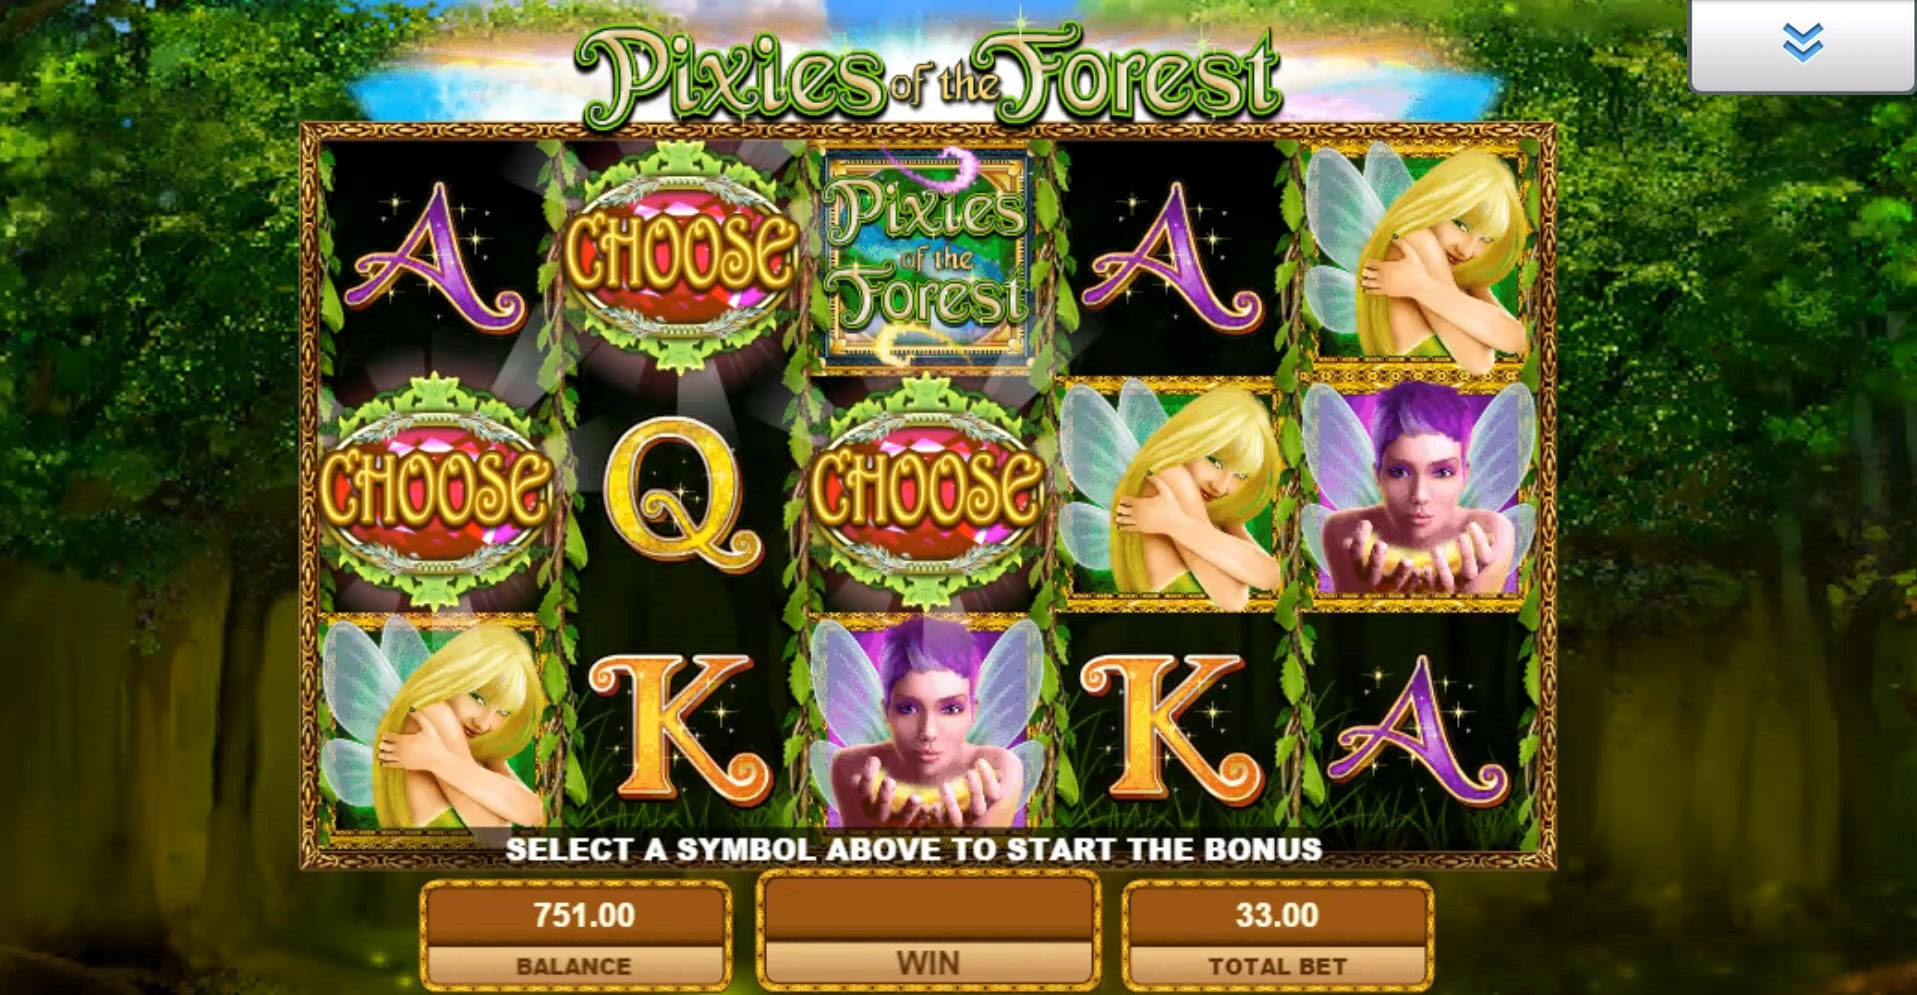 Choose a symbol to reveal the number of Pixies of the Forest slot Free Spins